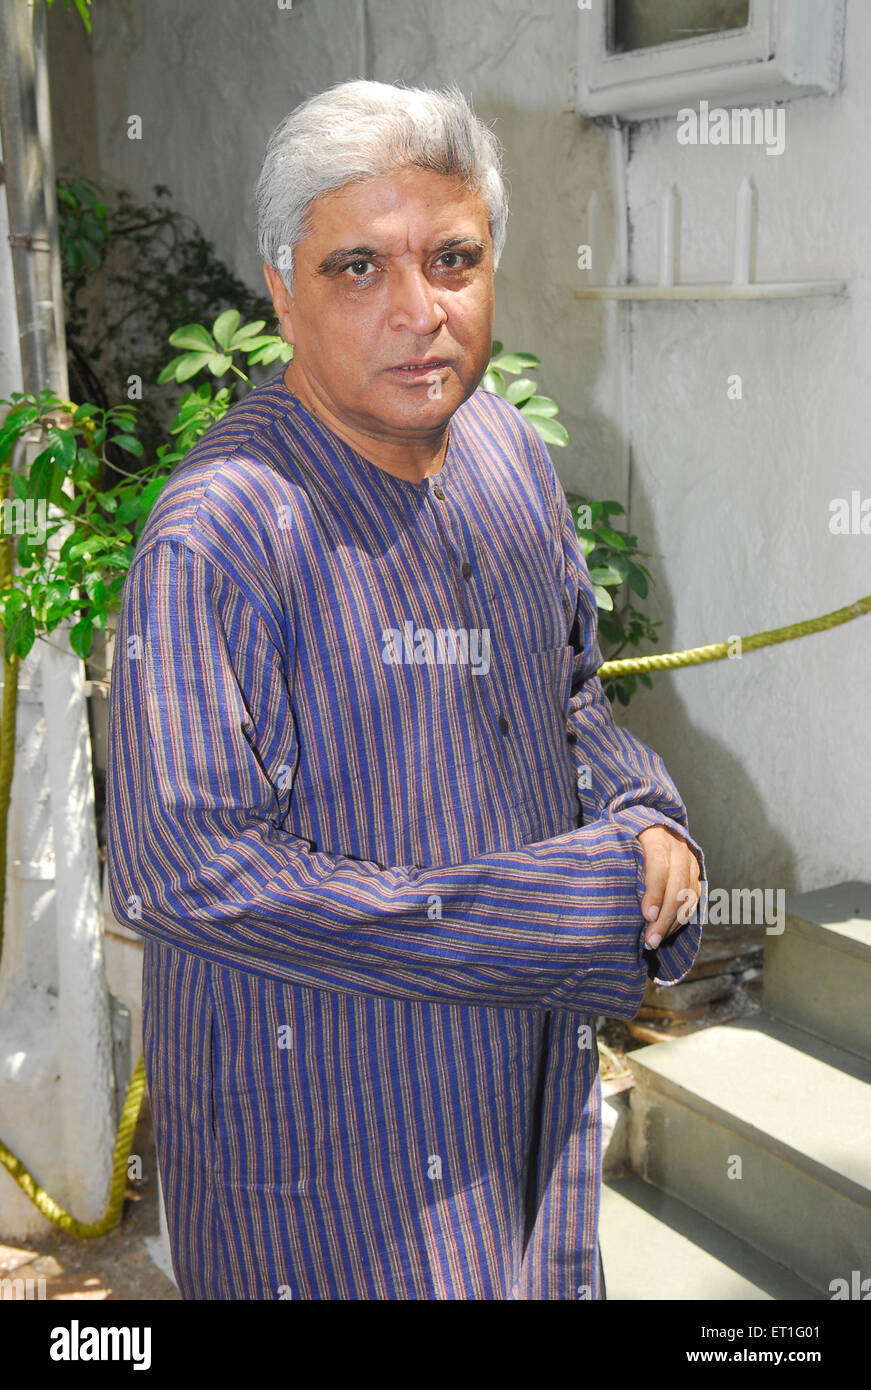 Lyricist poet film script writer javed akhtar ; India NO MR - Stock Image